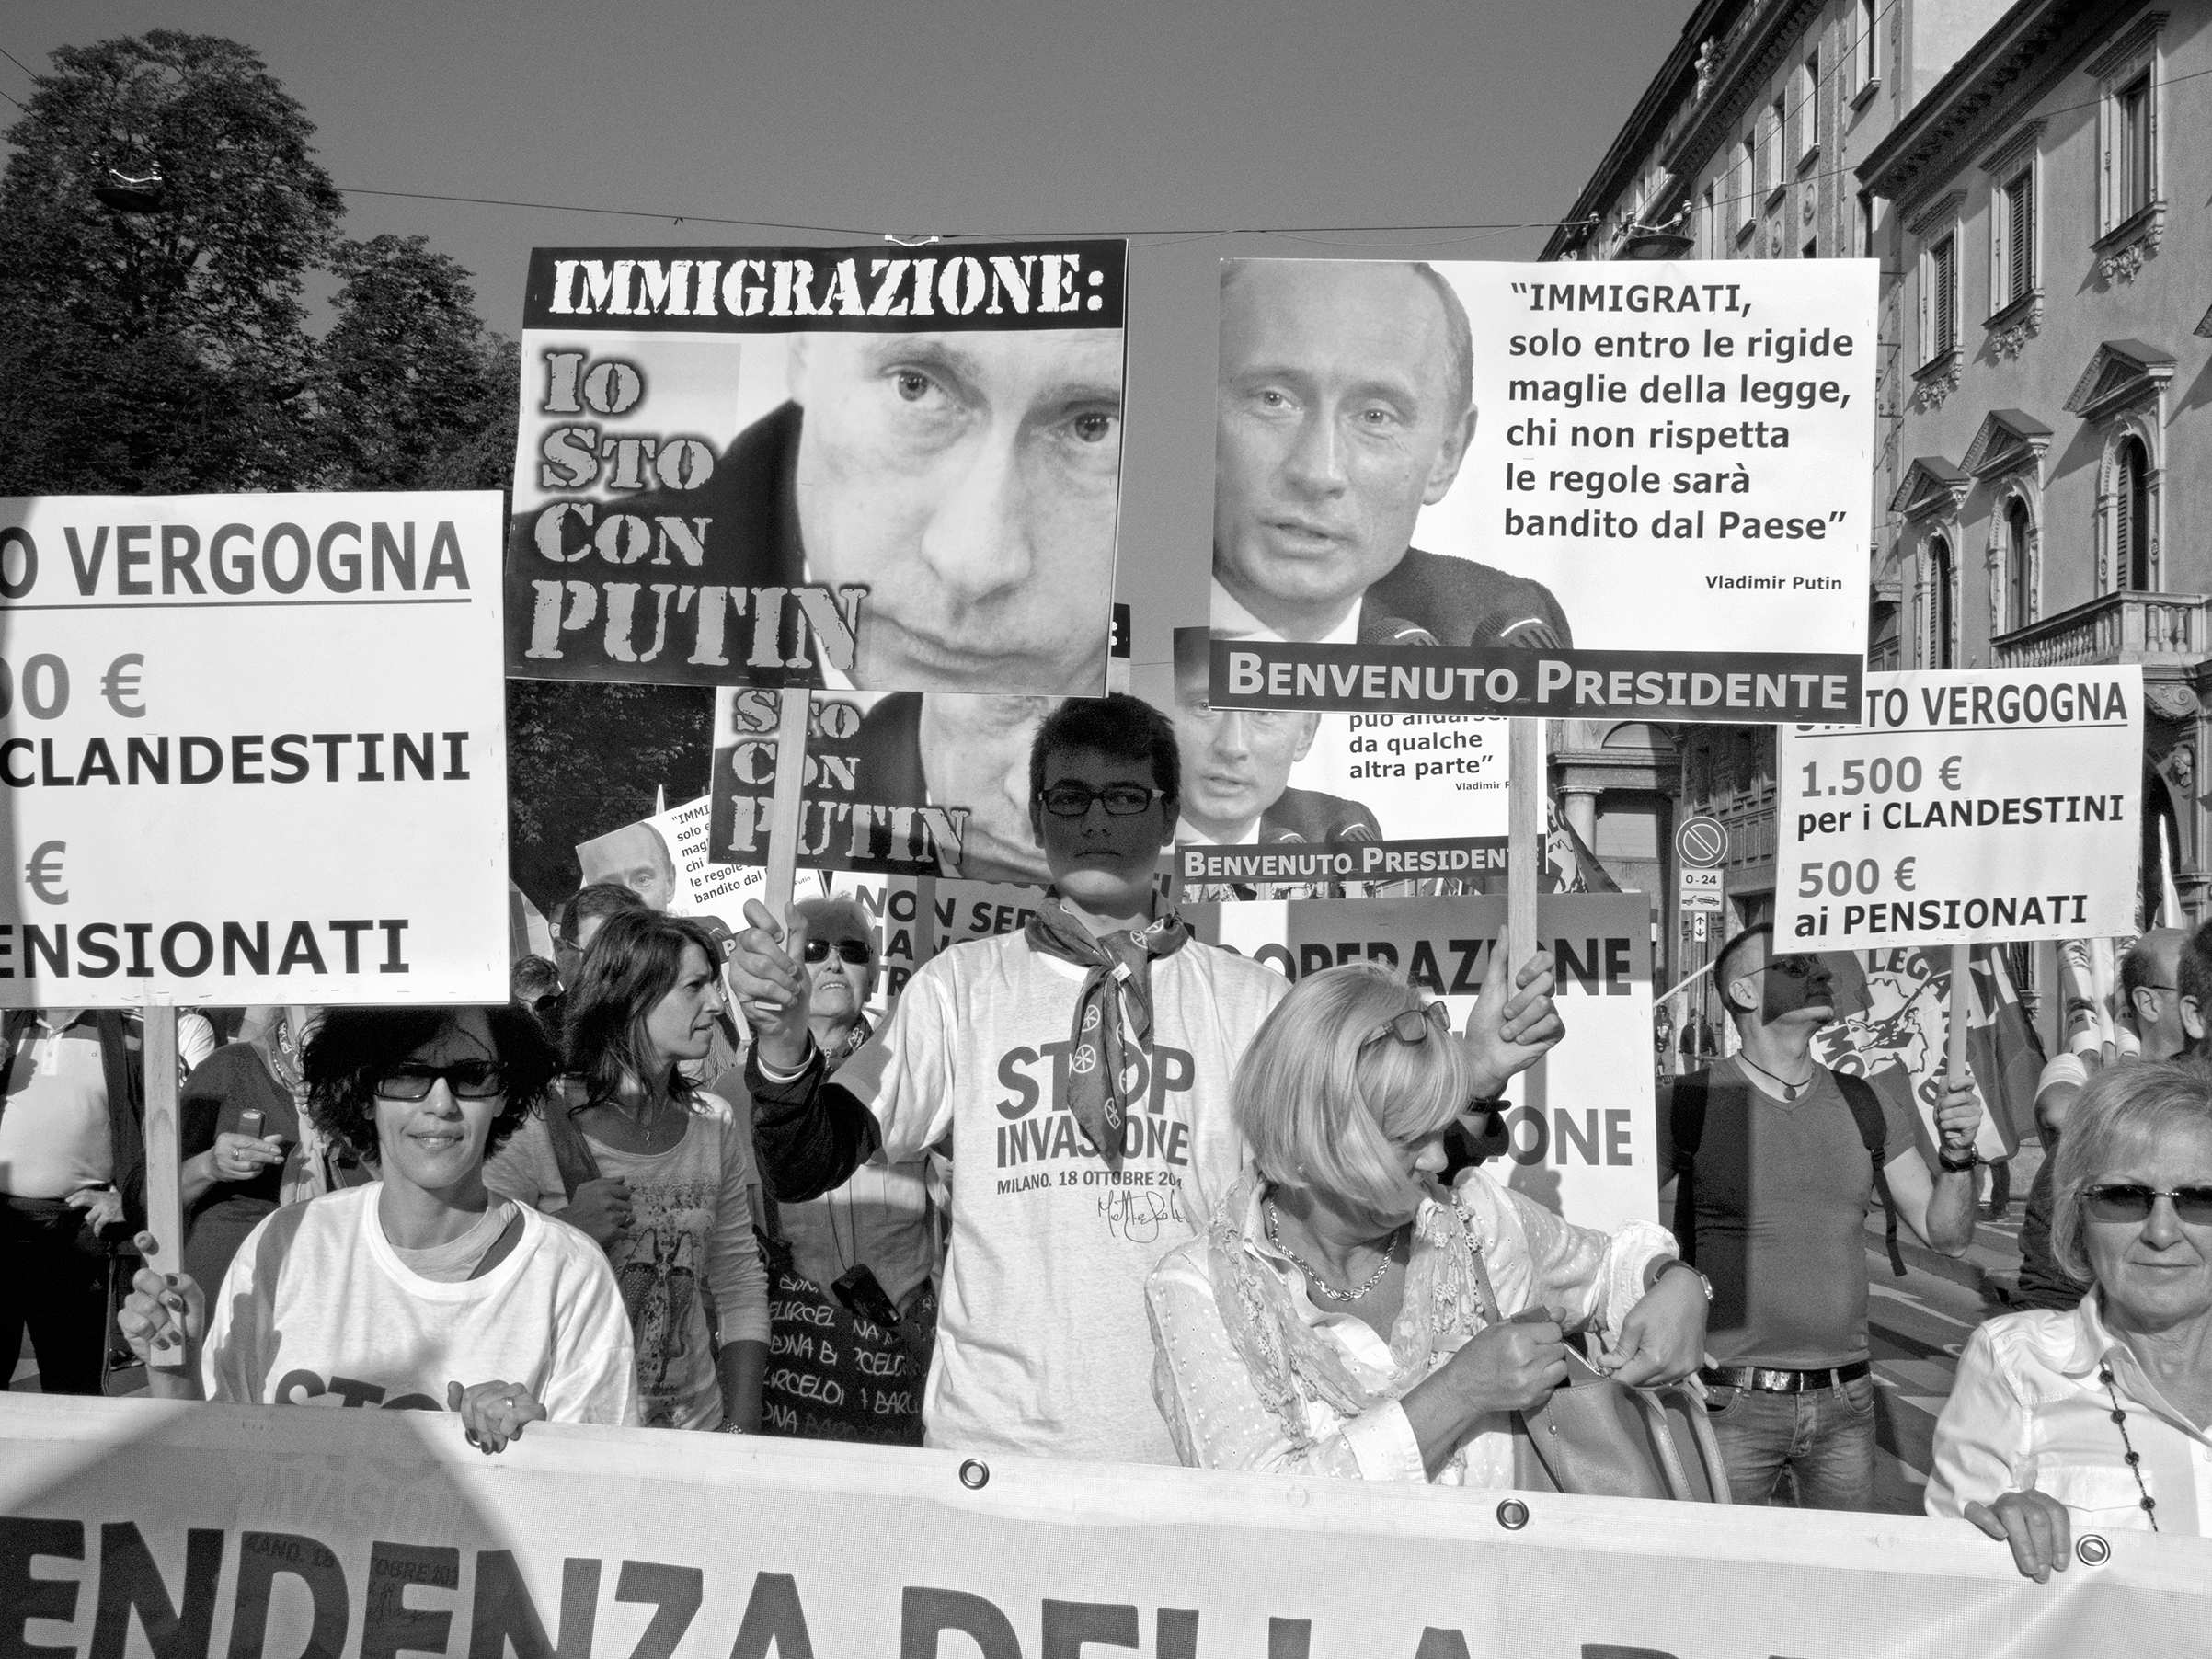 """Supporters of the then Northern League rally against an immigrant """"invasion"""" in Milan in October 2014"""